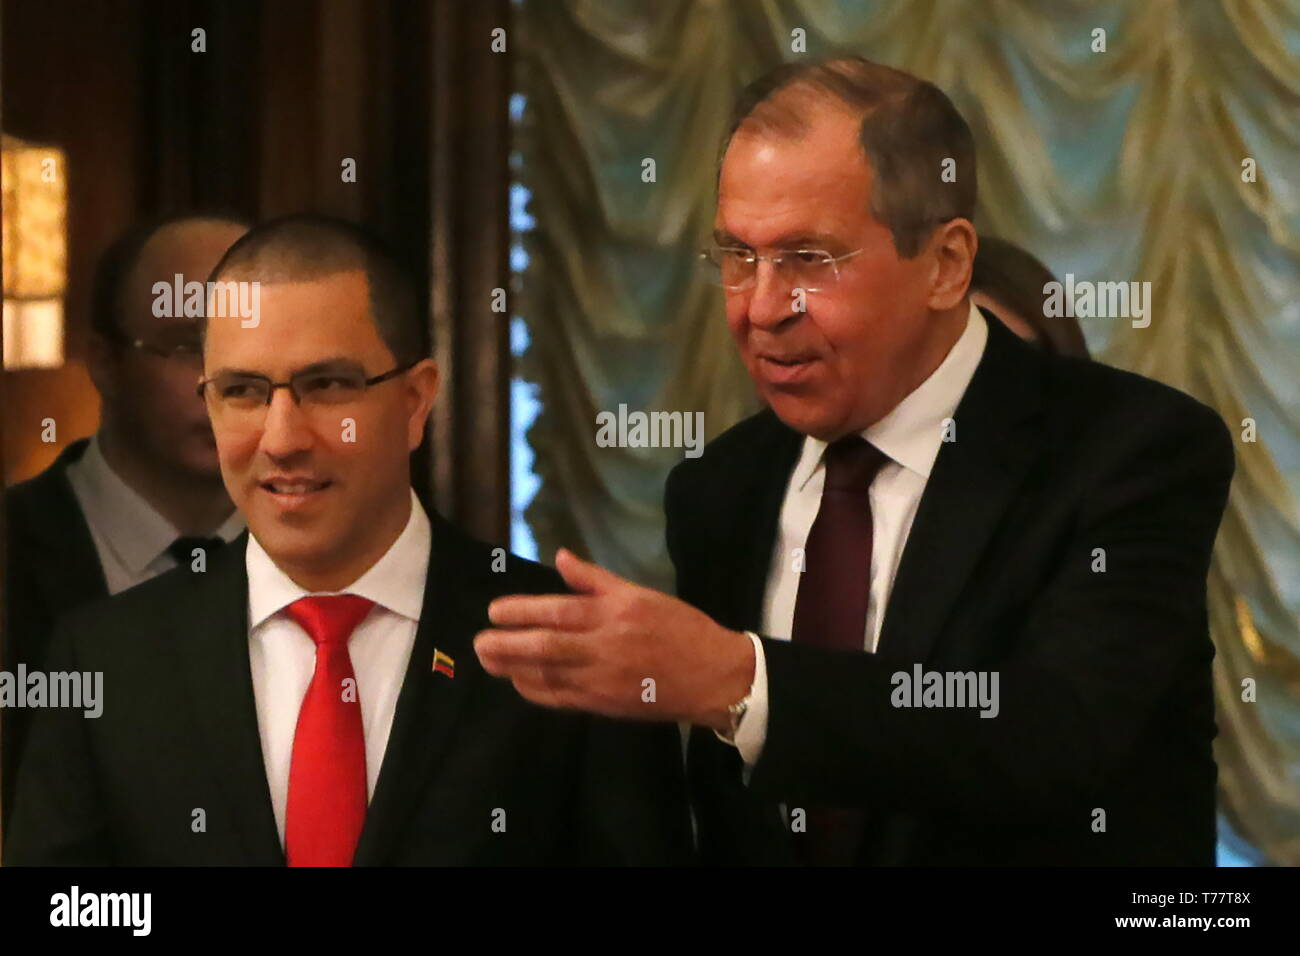 Moscow, Russia. 05th May, 2019. MOSCOW, RUSSIA - MAY 5, 2019: The Foreign Minister of the Bolivarian Republic of Venezuela Jorge Arreaza (L) and the Minister of Foreign Affairs of Russia Sergei Lavrov during a meeting at the Reception House of the Ministry of Foreign Affairs of Russia. Vladimir Gerdo/TASS Credit: ITAR-TASS News Agency/Alamy Live News - Stock Image